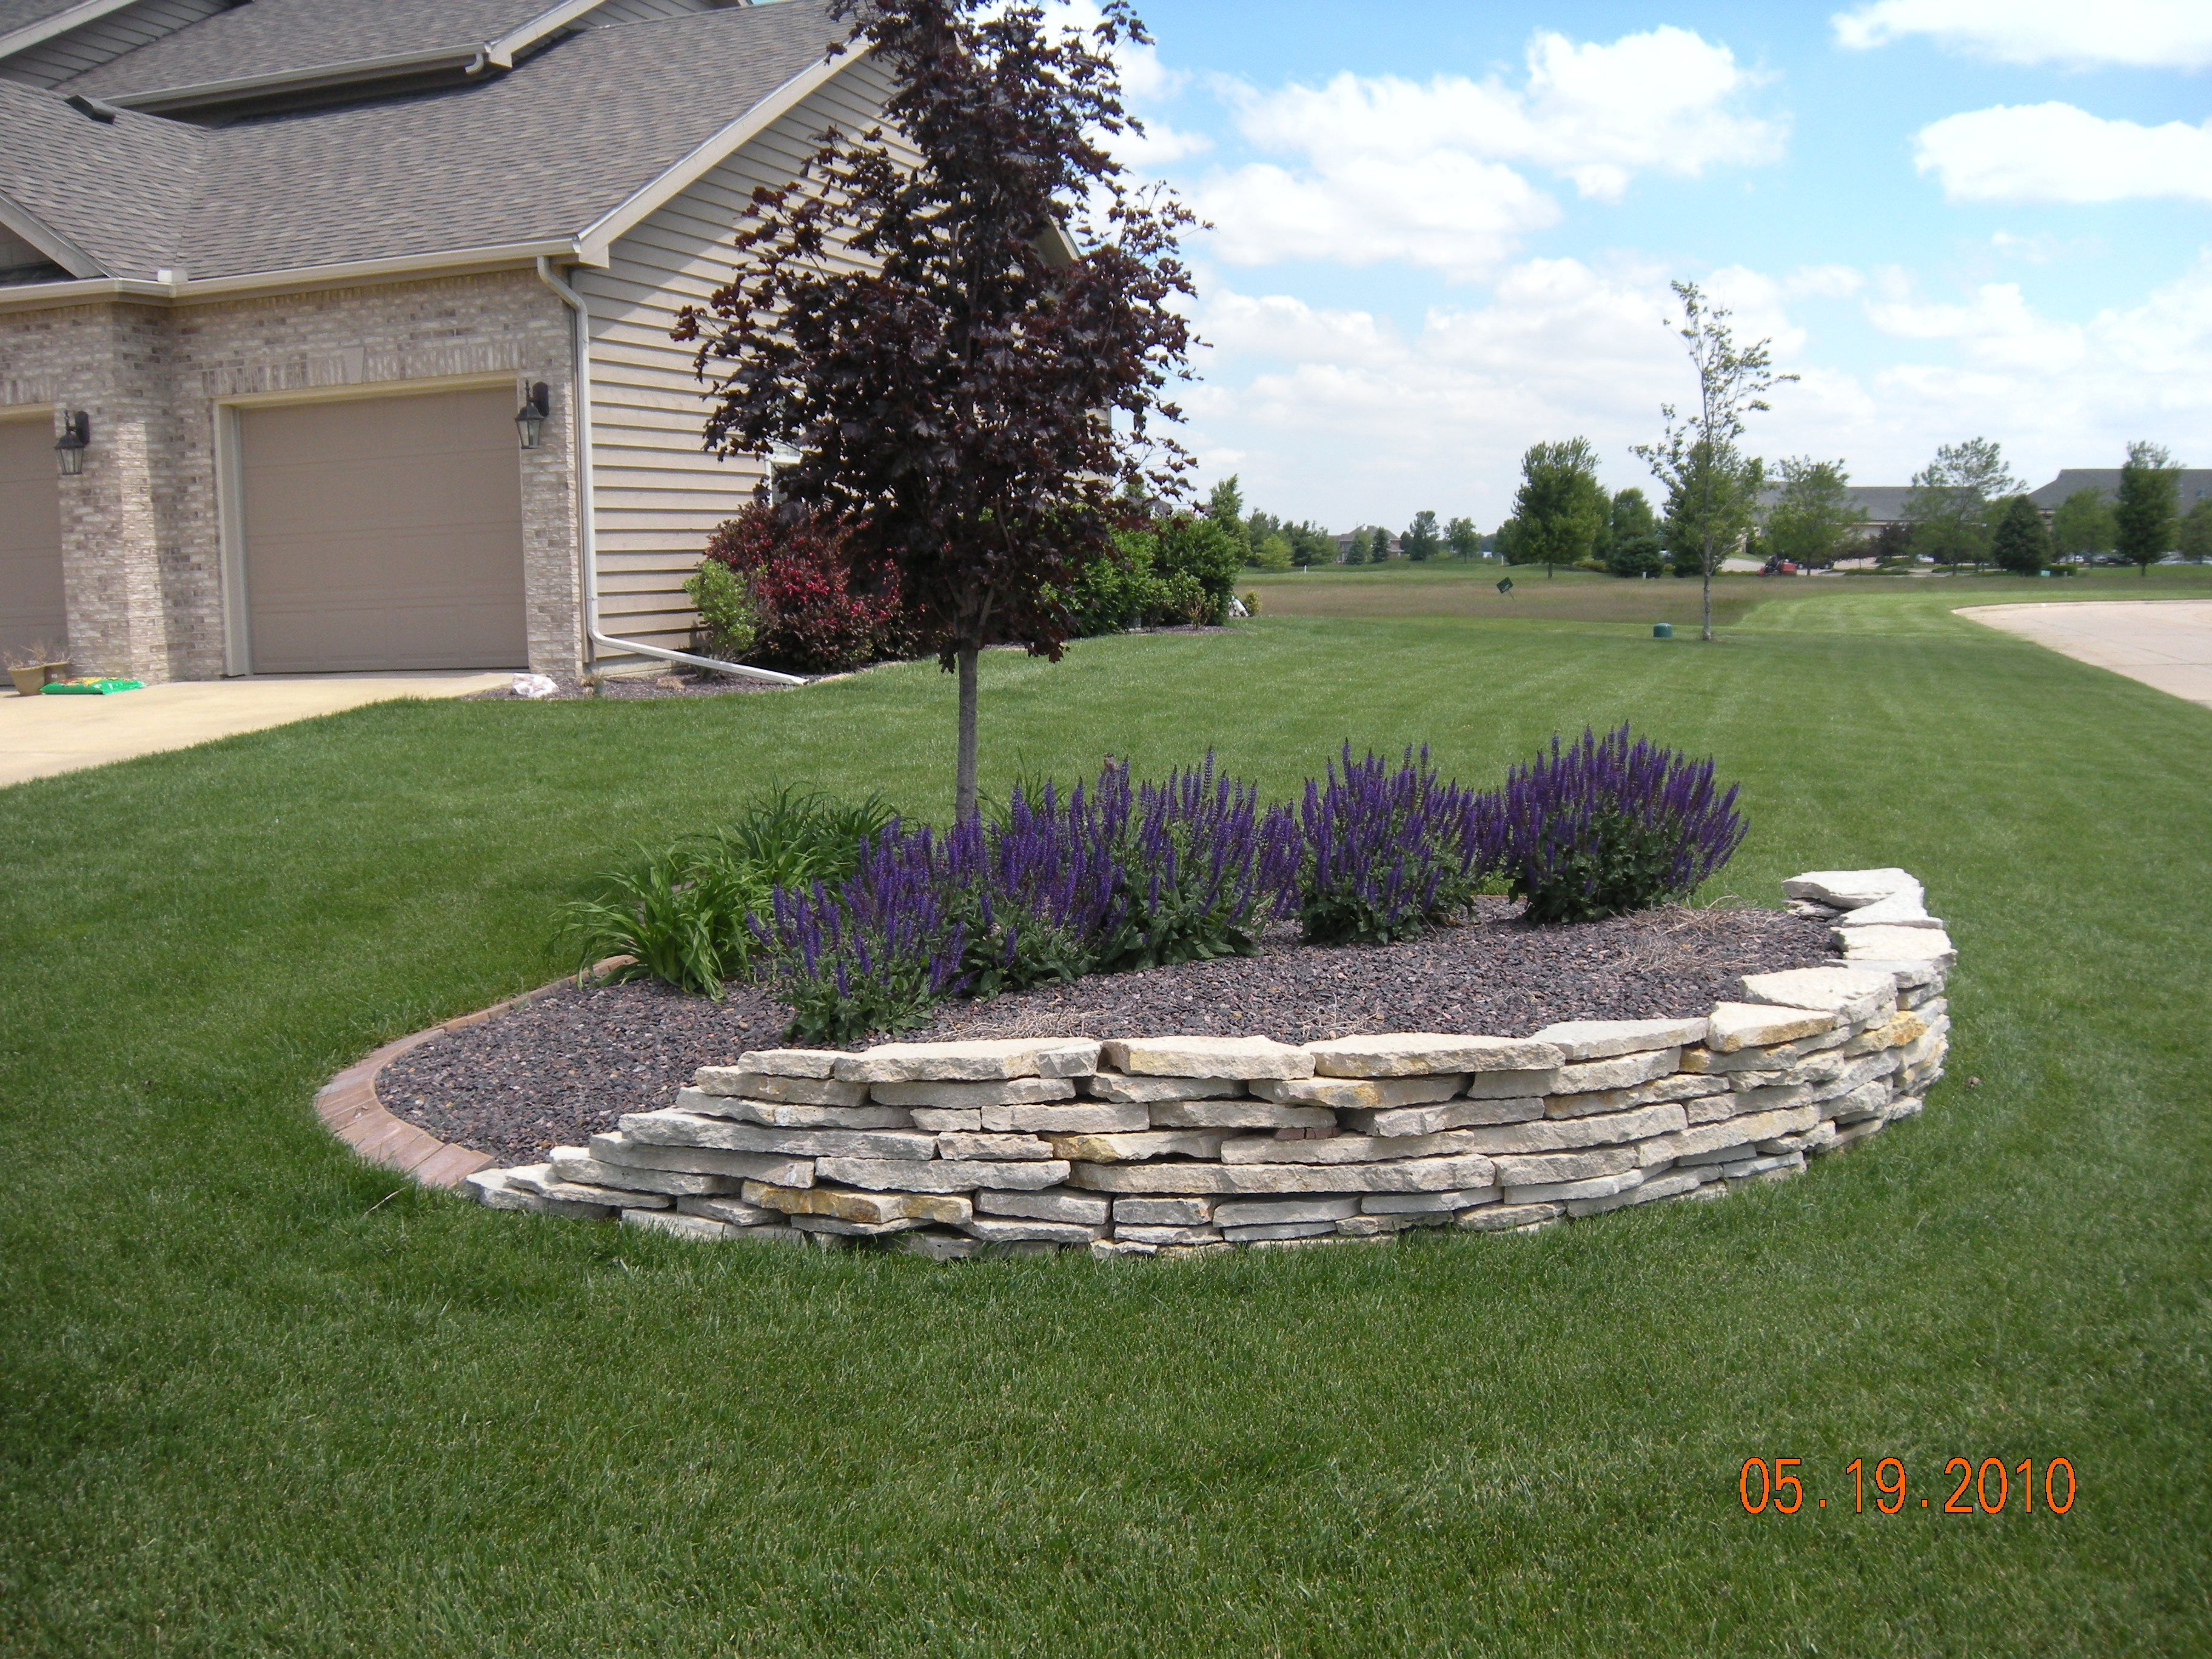 Landscaping Natural Stone : Idea for berm in front yard